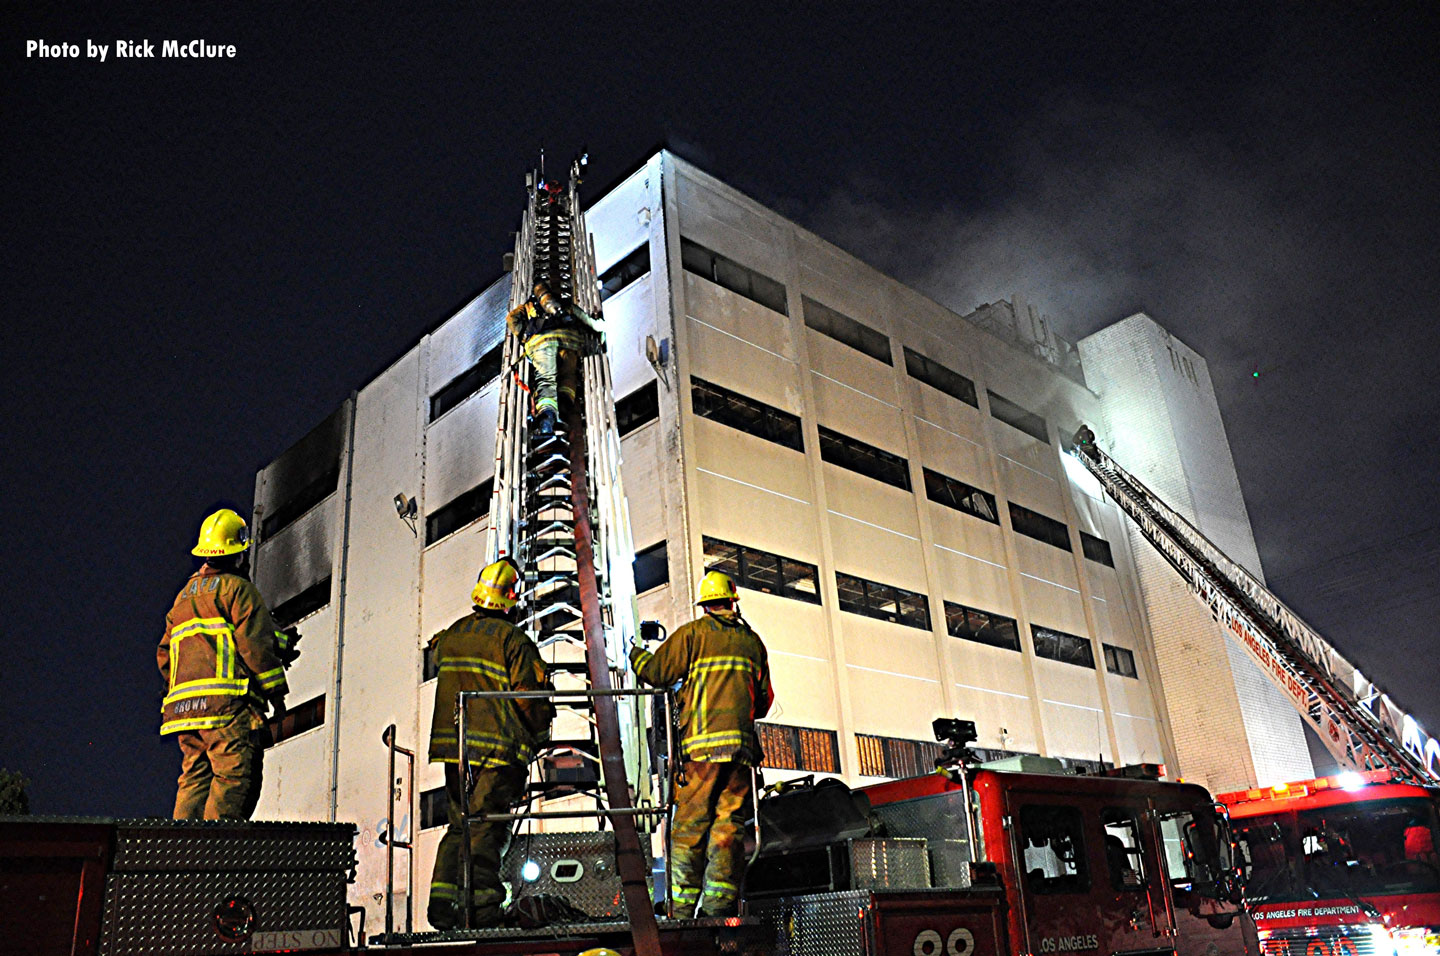 Firefighters on scene at the fire in a vacant building in Los Angeles.